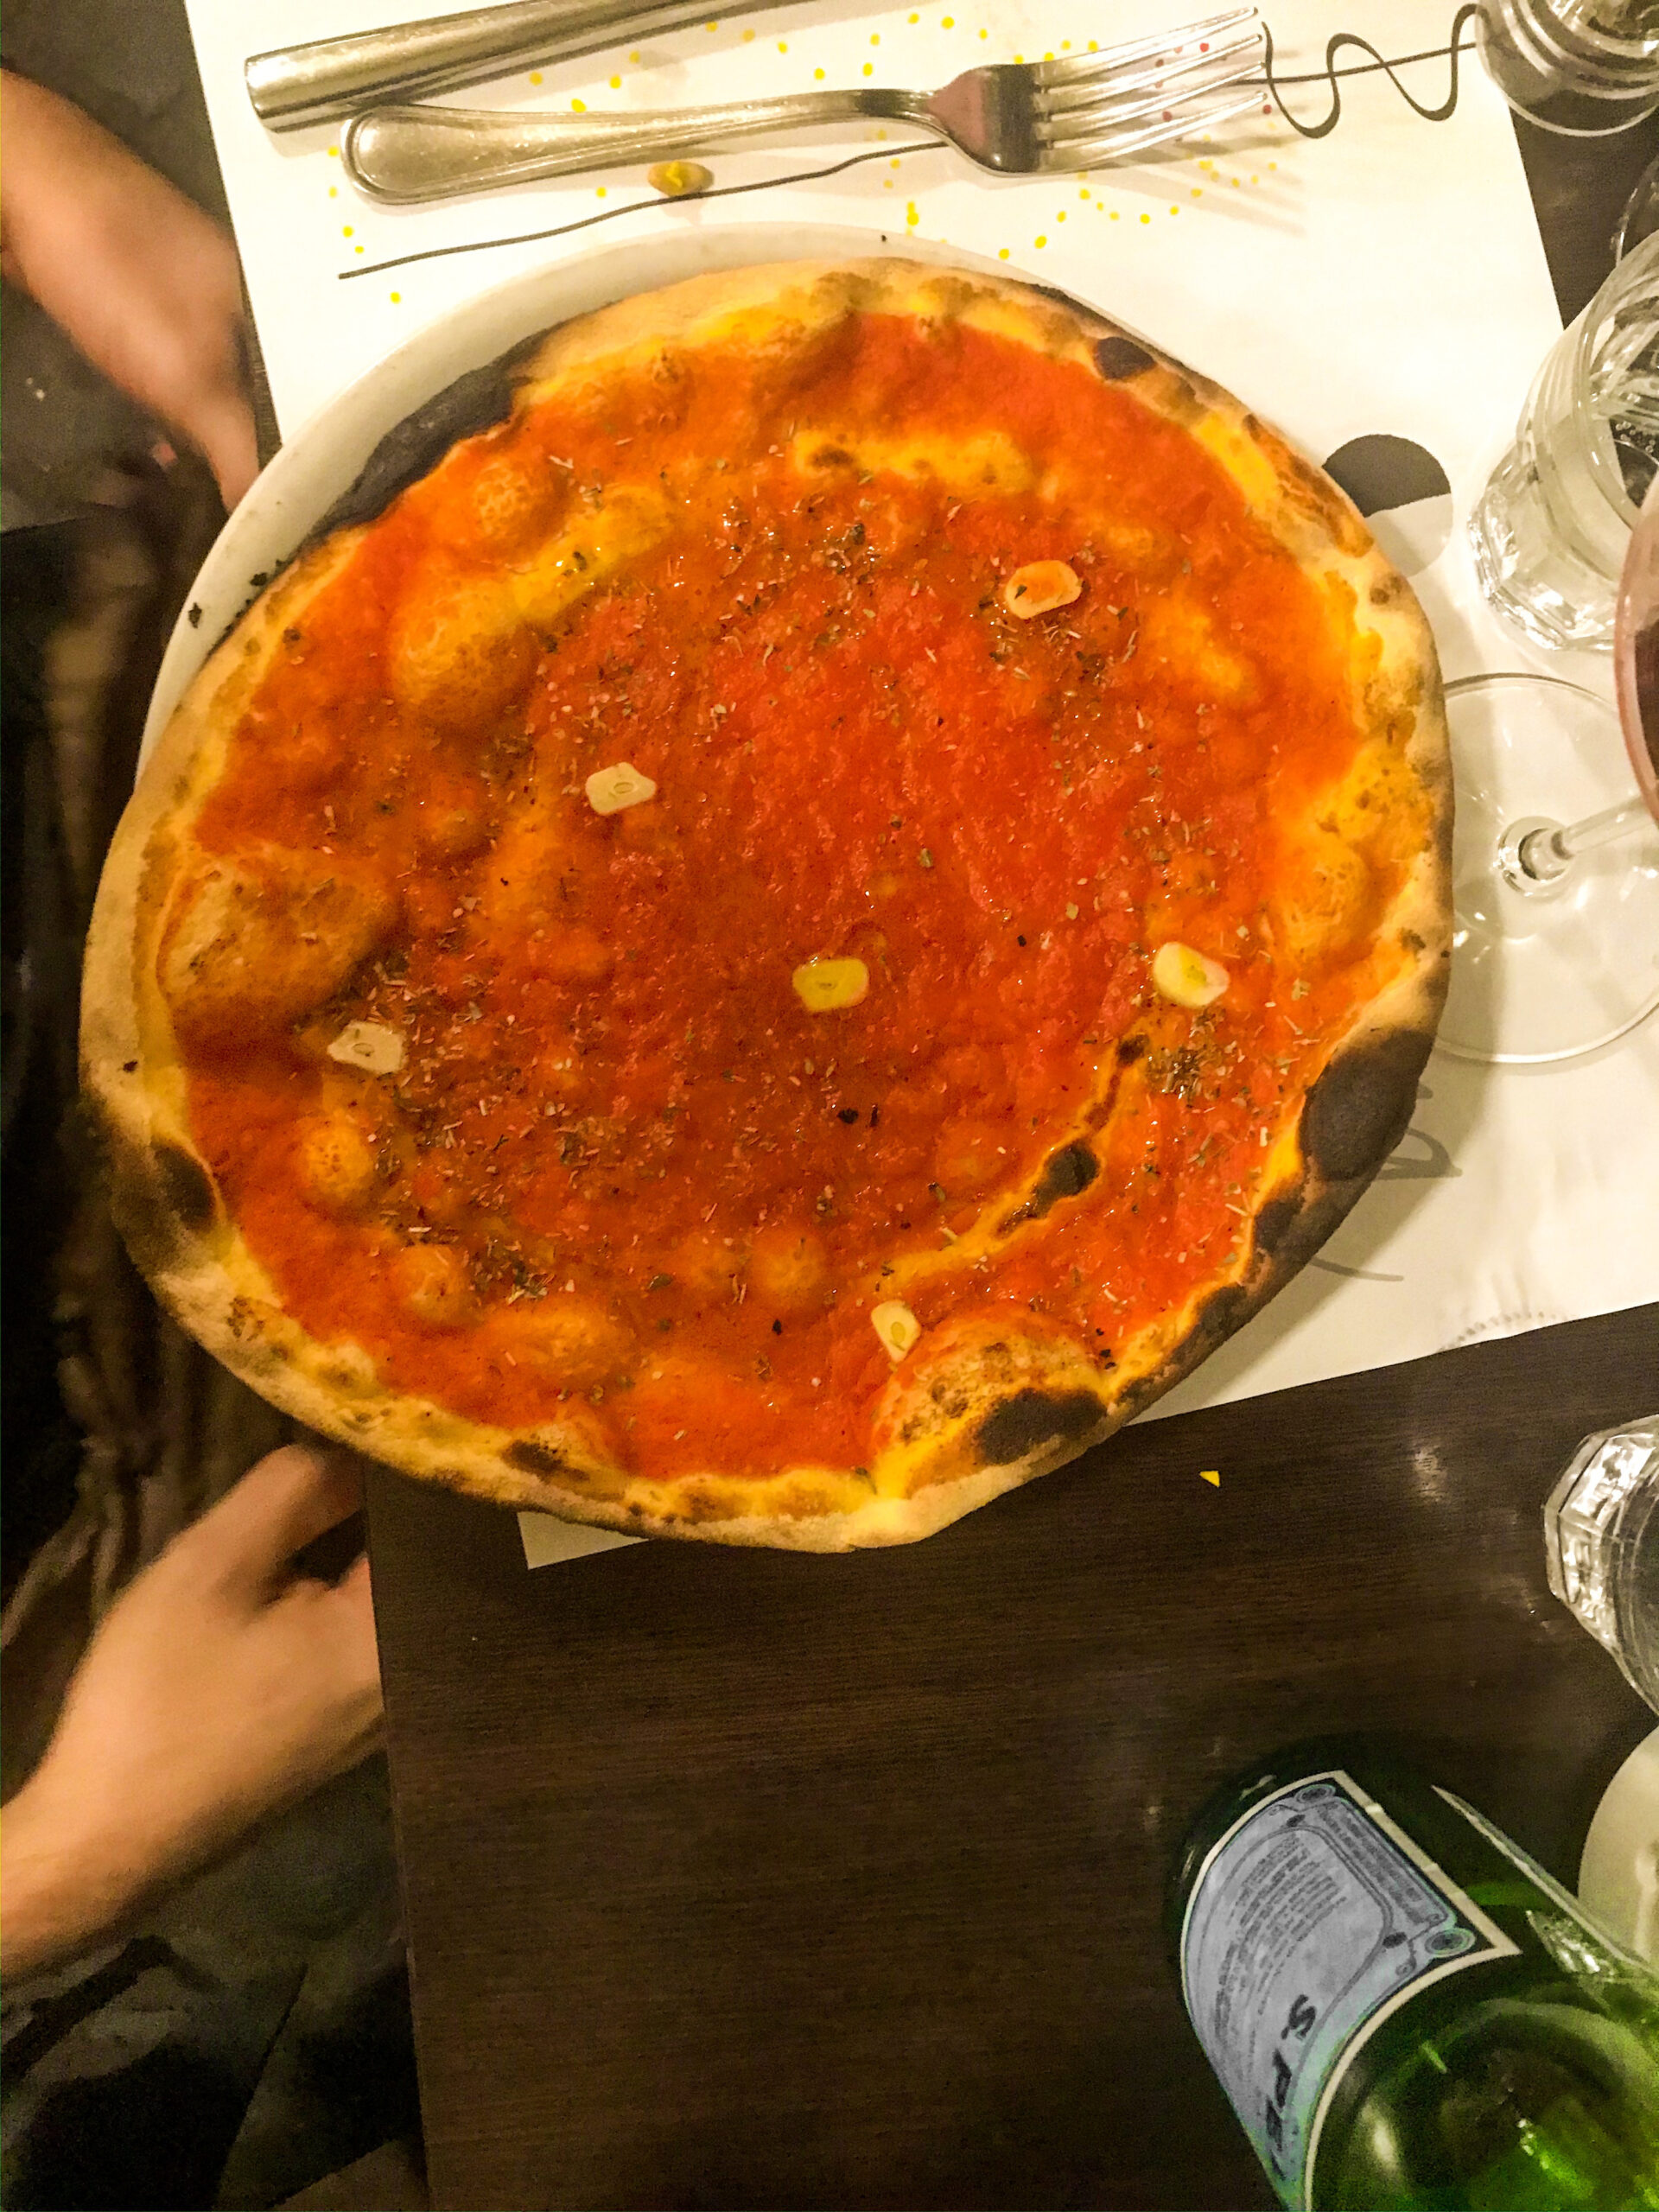 emma's pizza rome